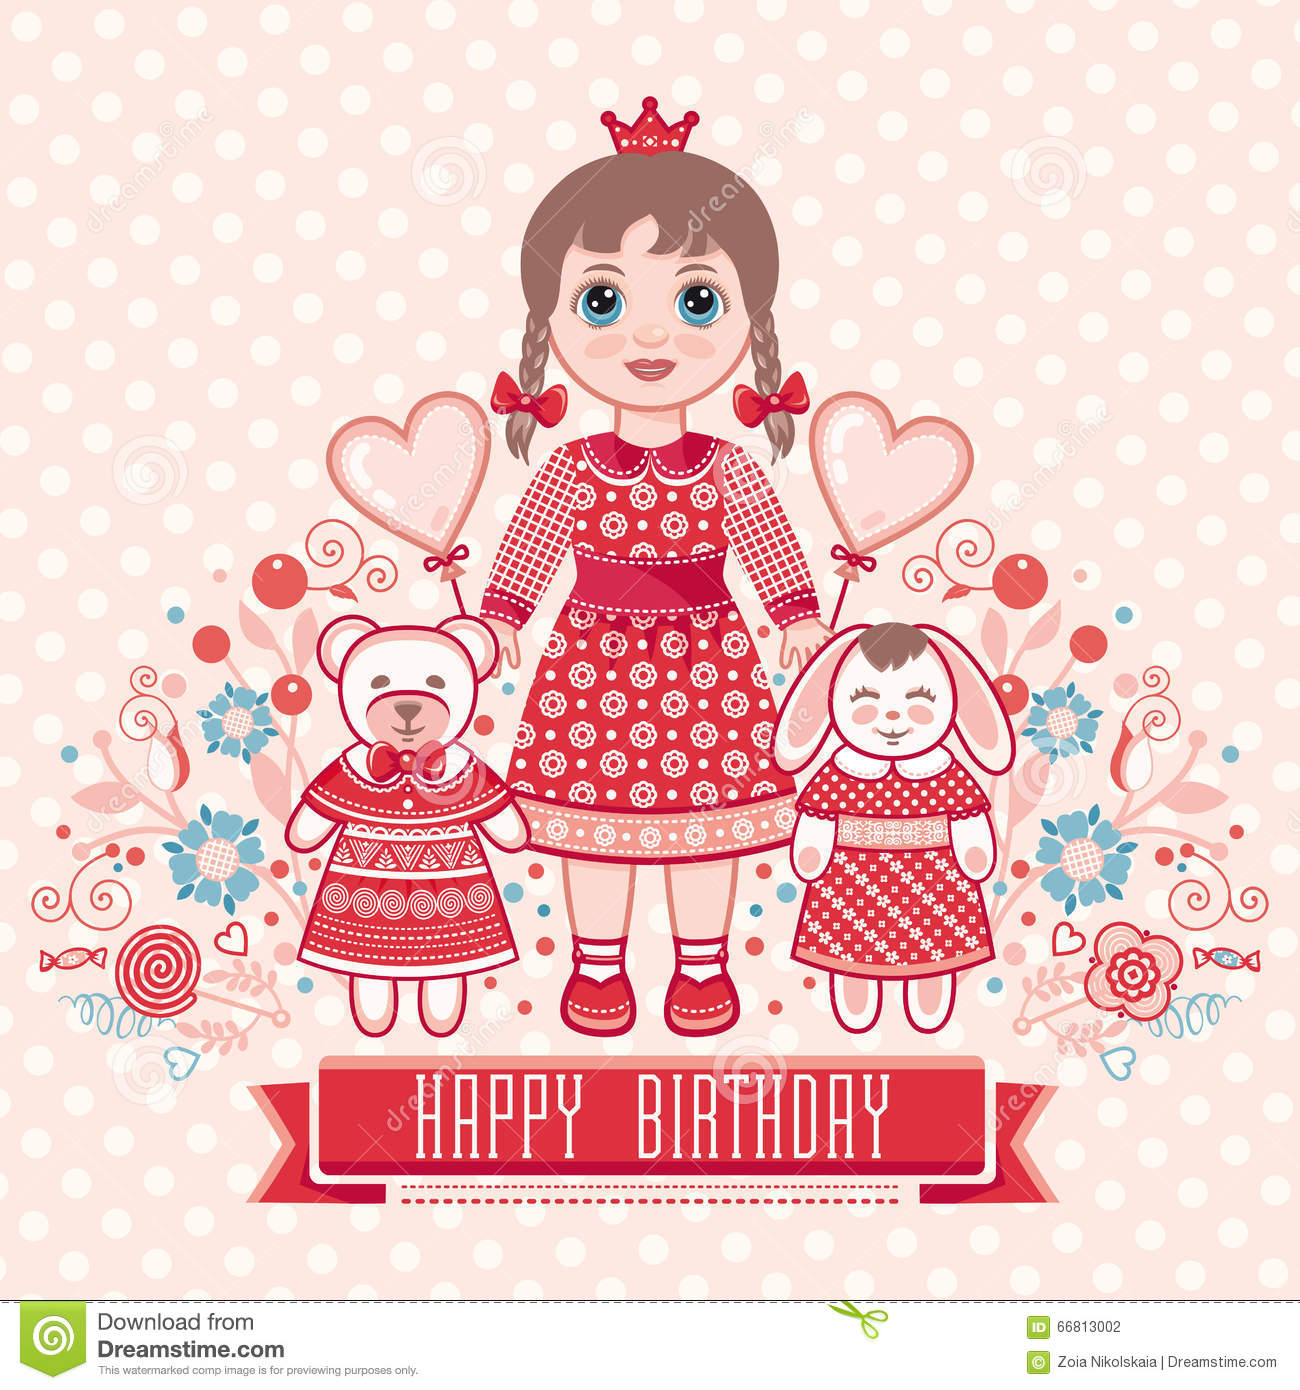 Birthday Cards For Girl gangcraftnet – Happy Birthday Card for Little Girl